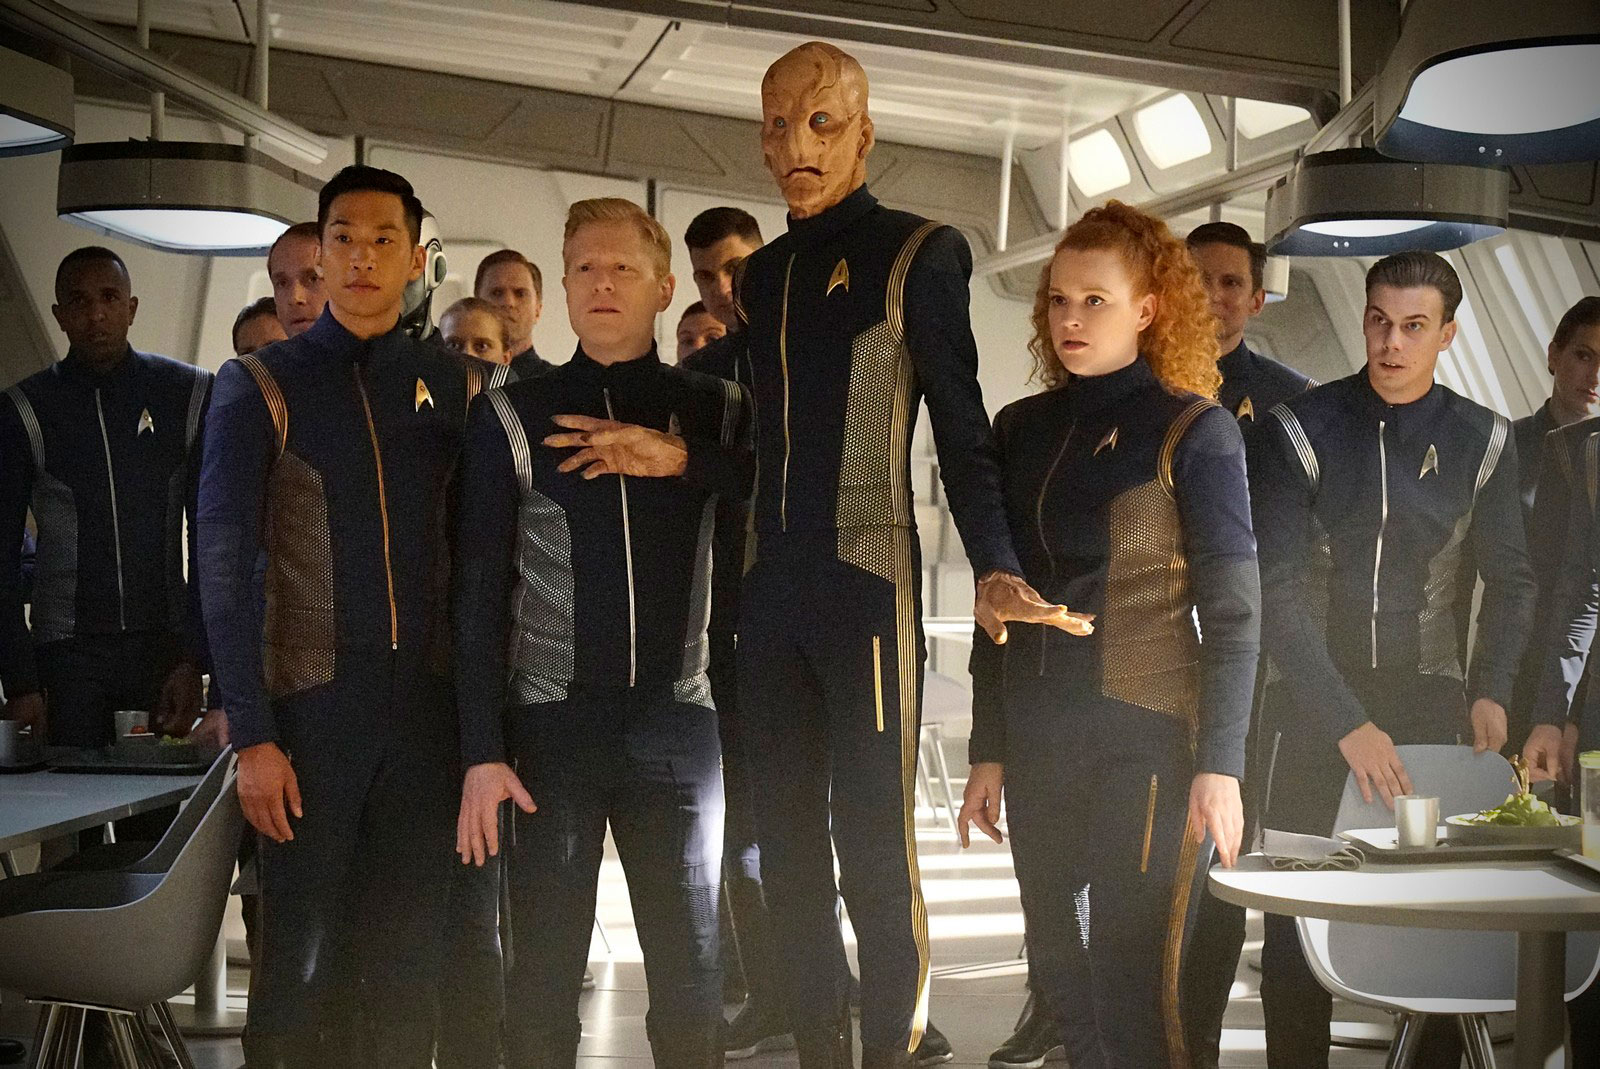 Patrick Kwok-Choon as Gen Rhys, Anthony Rapp as Paul Stamets, Doug Jones as Saru and Mary Wiseman as Sylvia Tilly